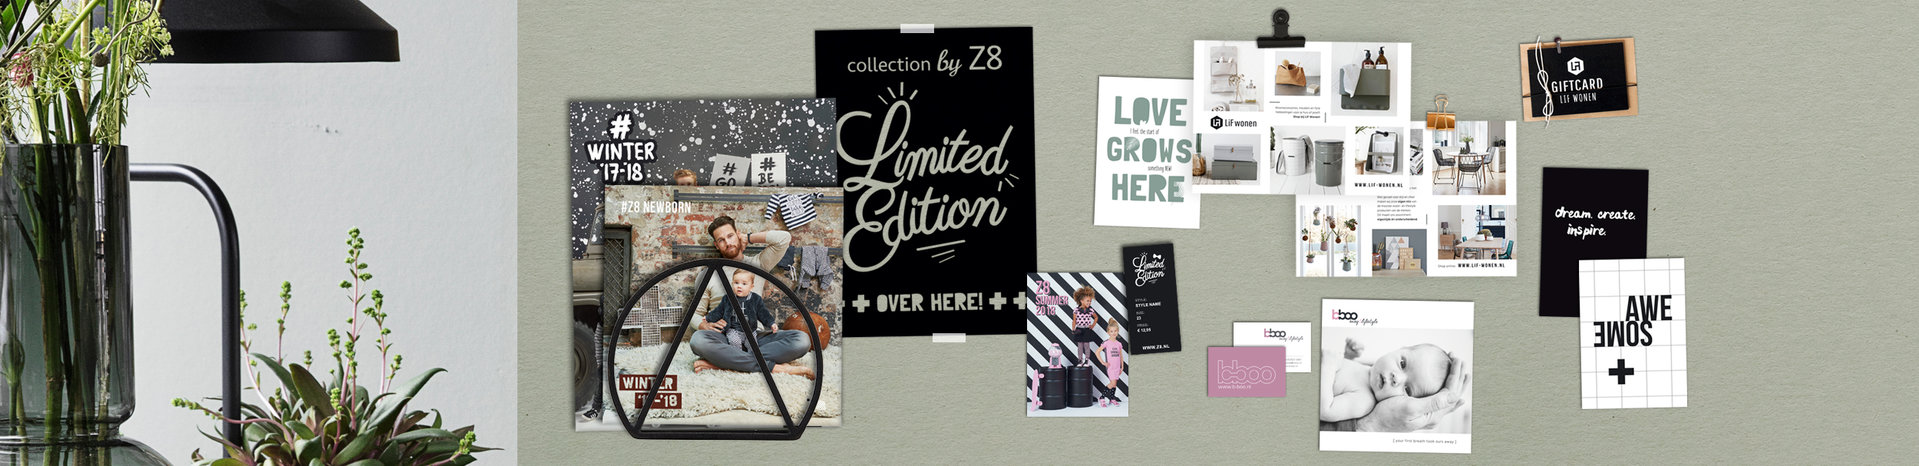 slider-stationery-collage-prik